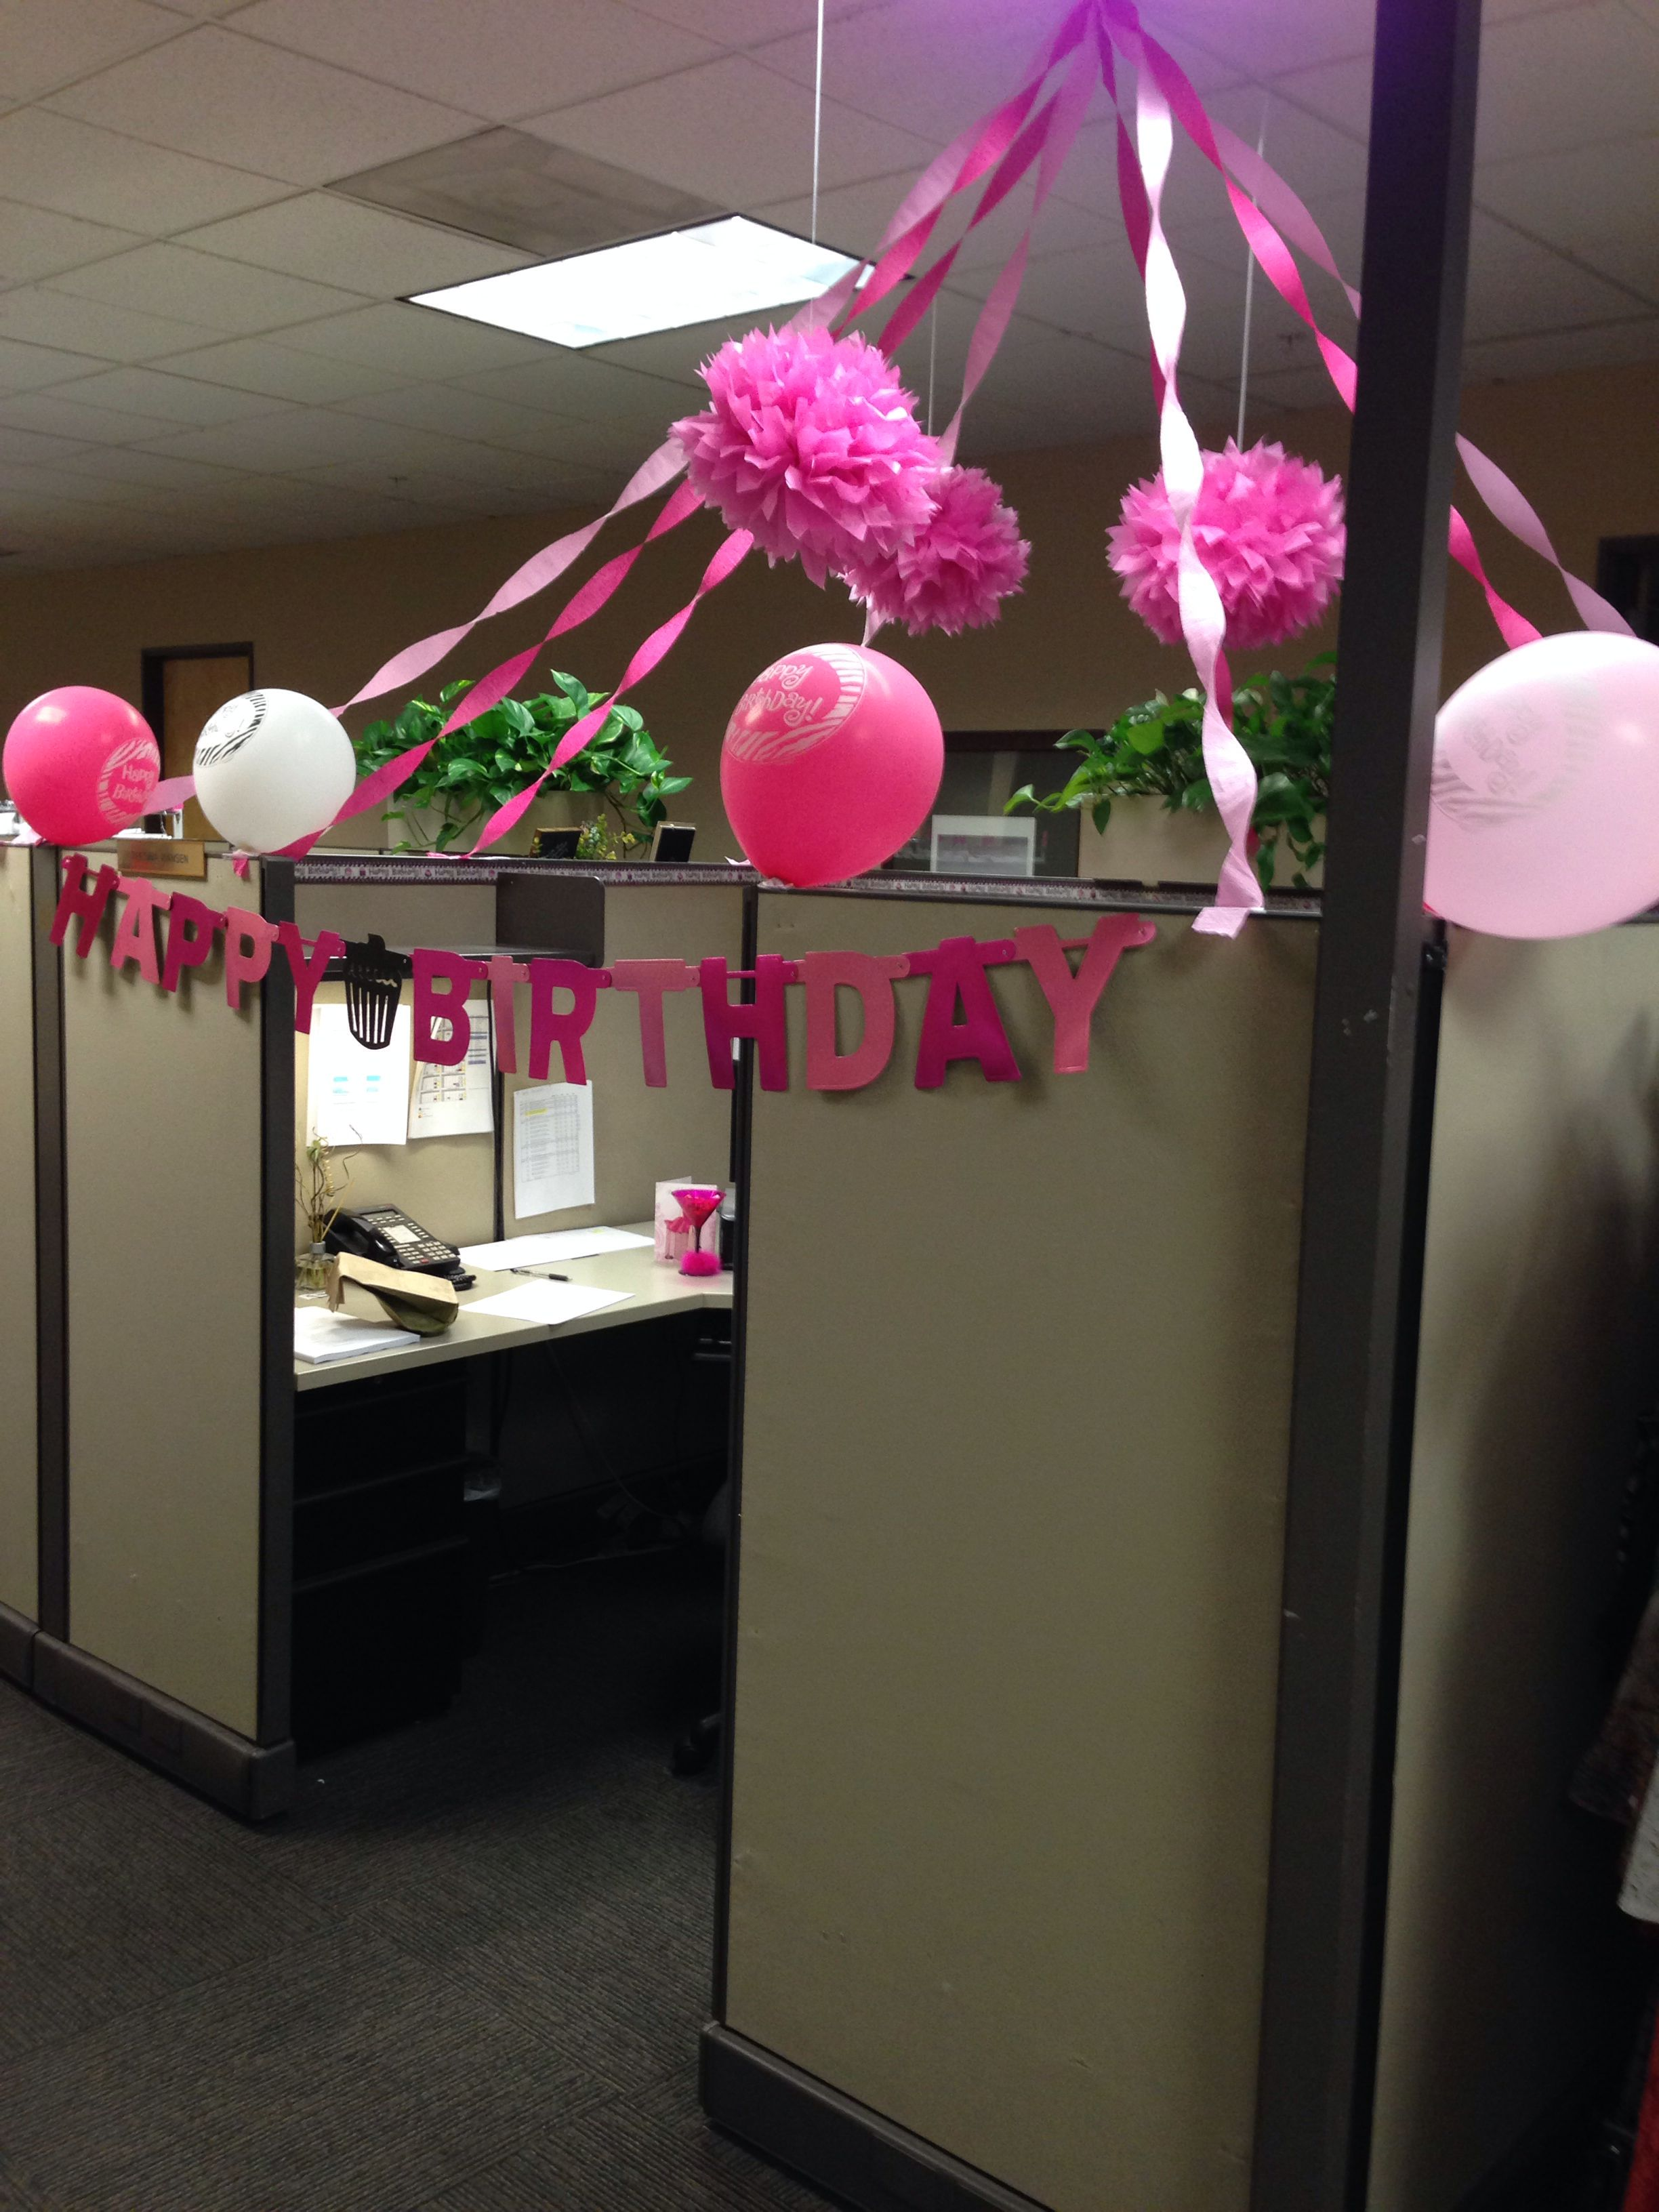 My Birthday Cubicle Office Birthday Decorations Cubicle Birthday Decorations Office Birthday